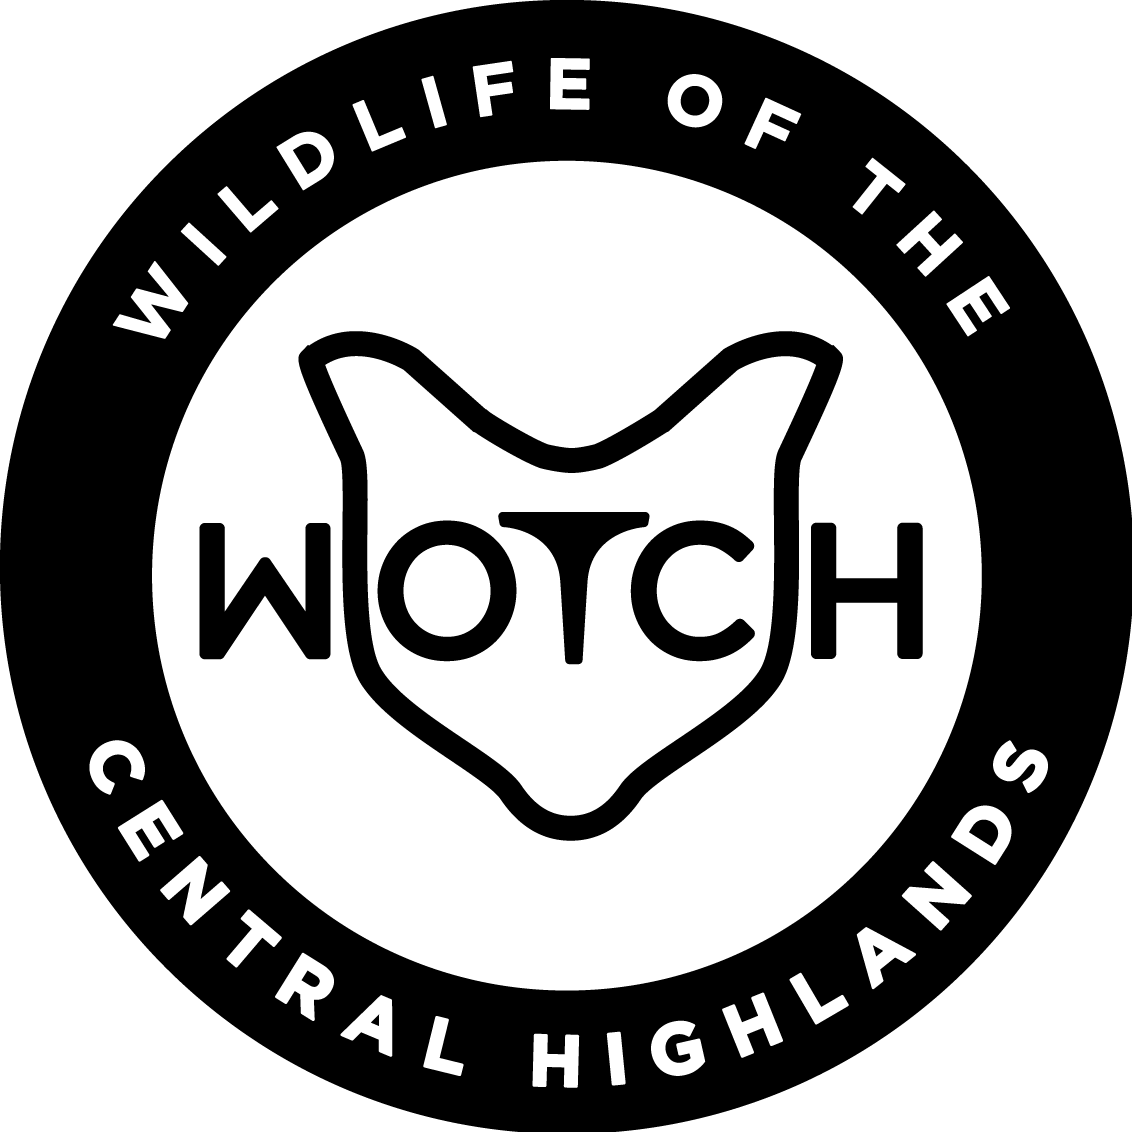 WILDLIFE OF THE CENTRAL HIGHLANDS